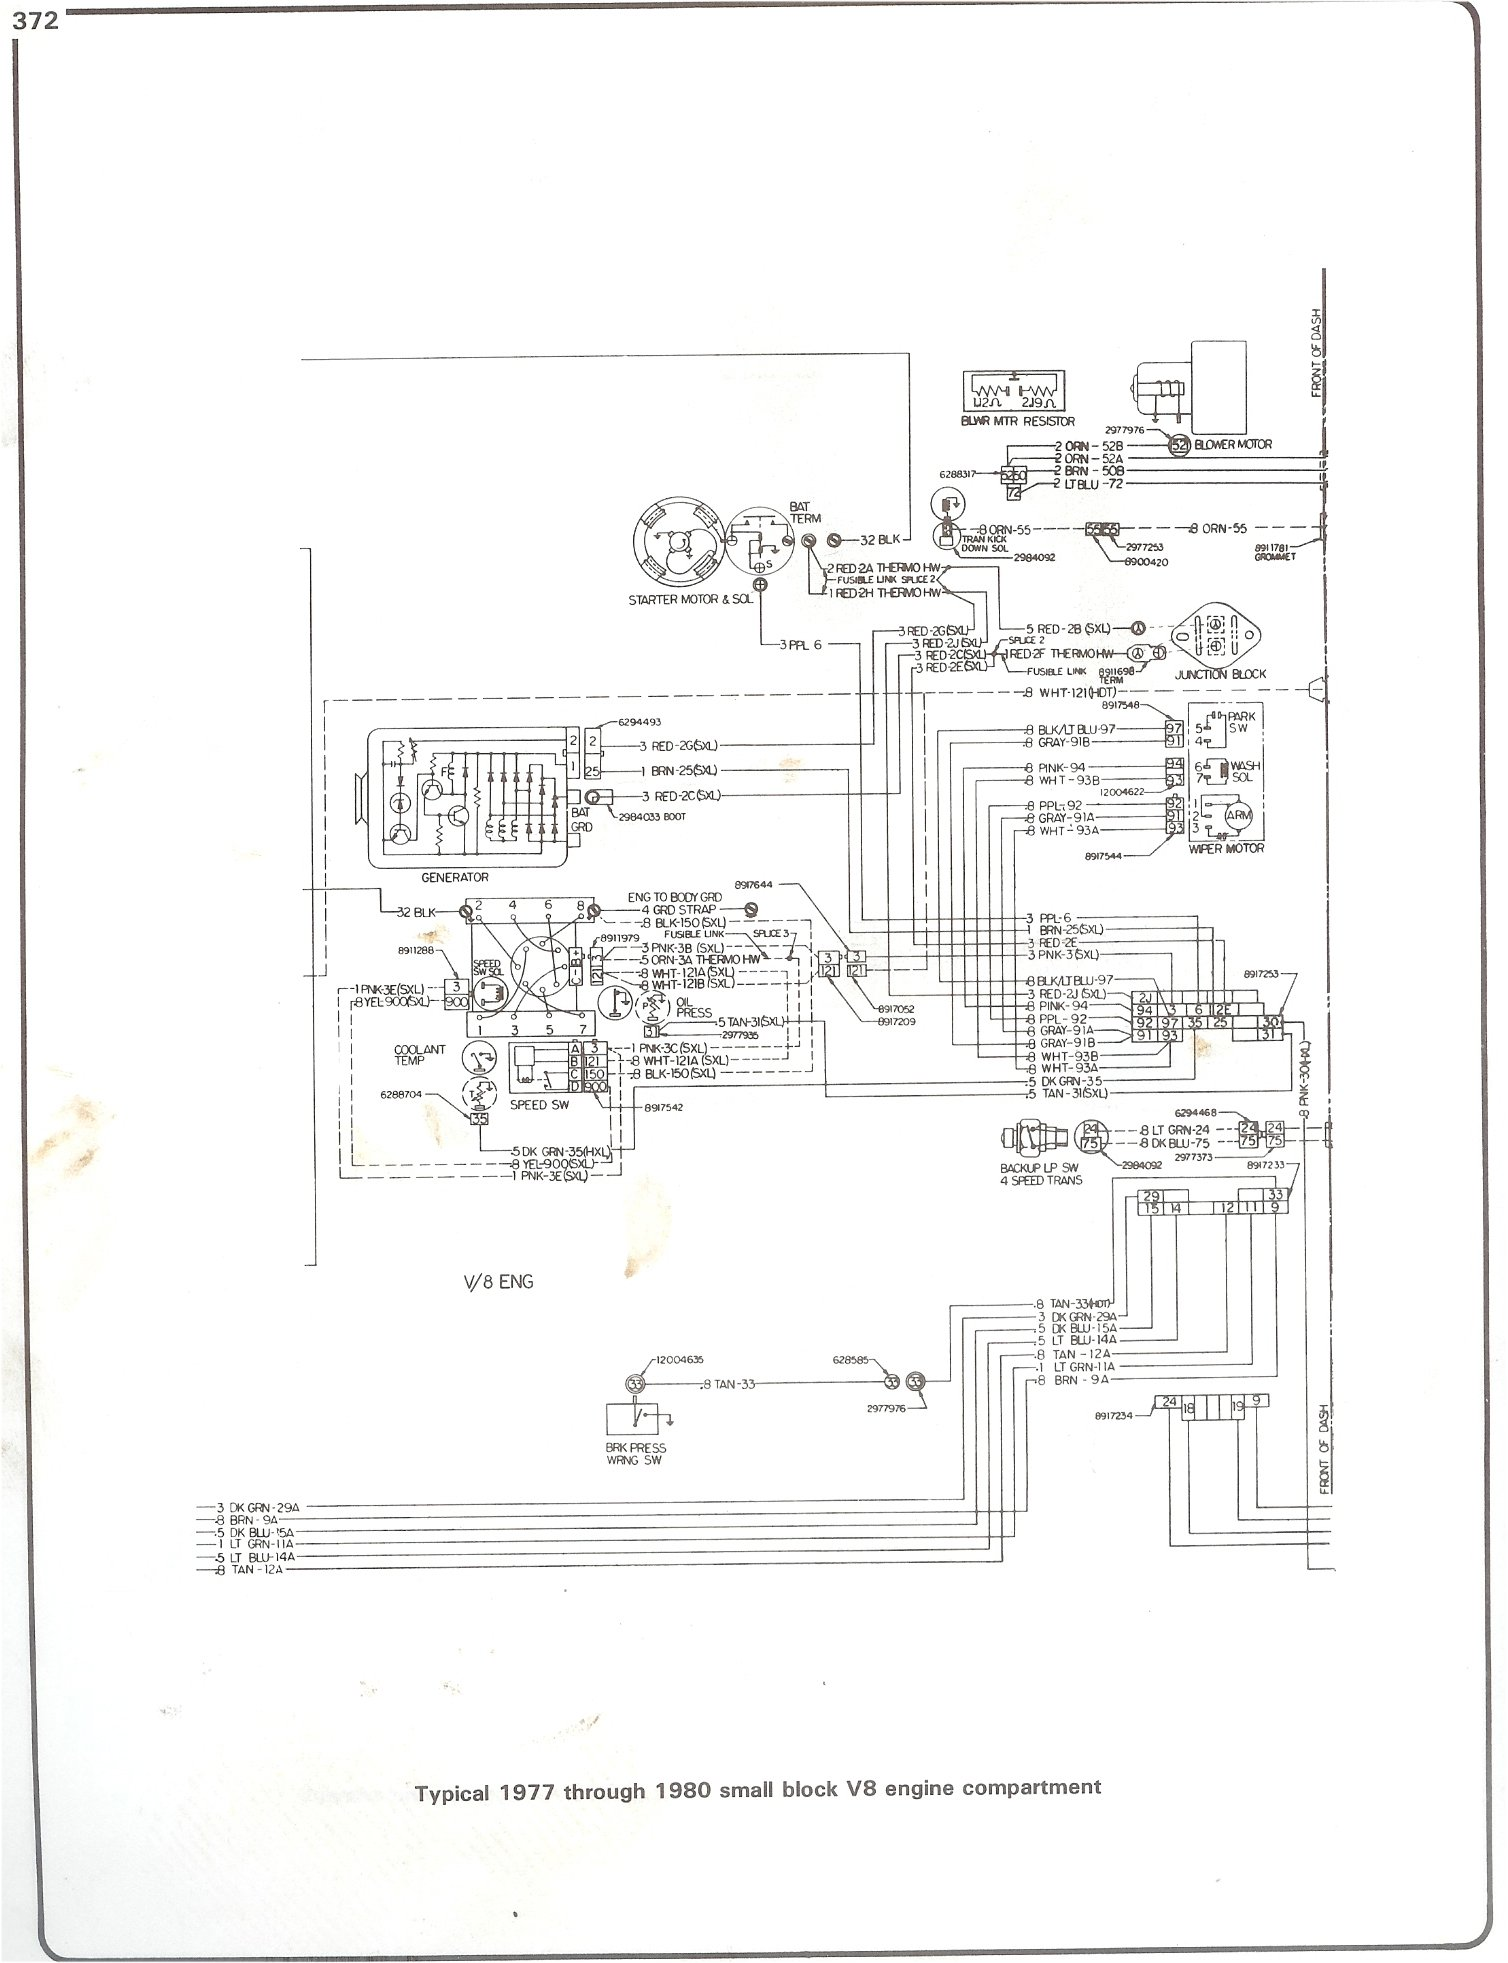 73 87 chevy truck engine wiring harness schema wiring diagrams  87 chevy truck engine wiring harness diagram #8